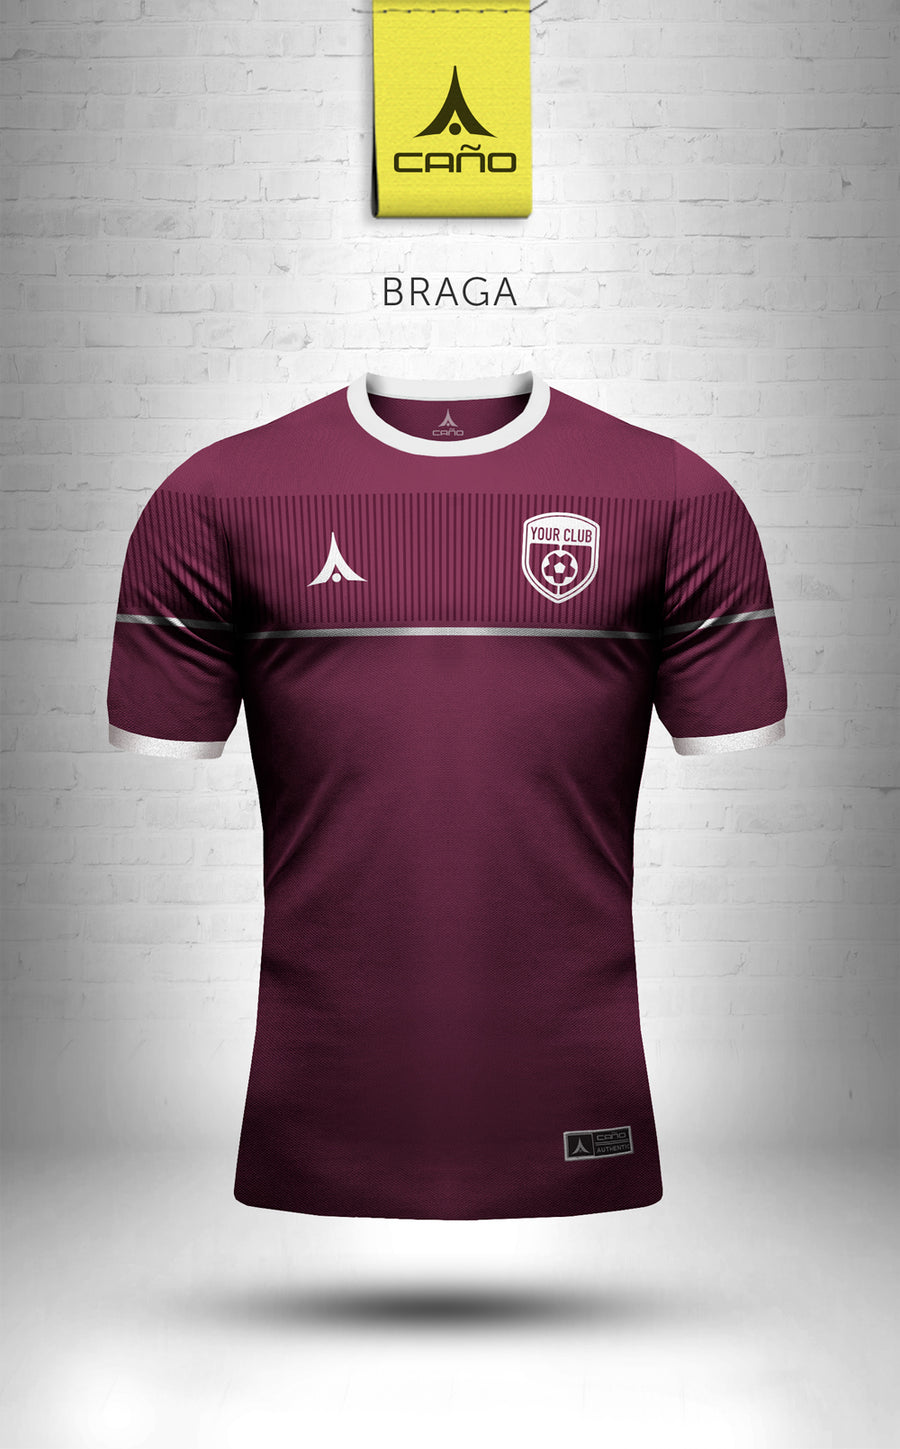 Braga in maroon/white